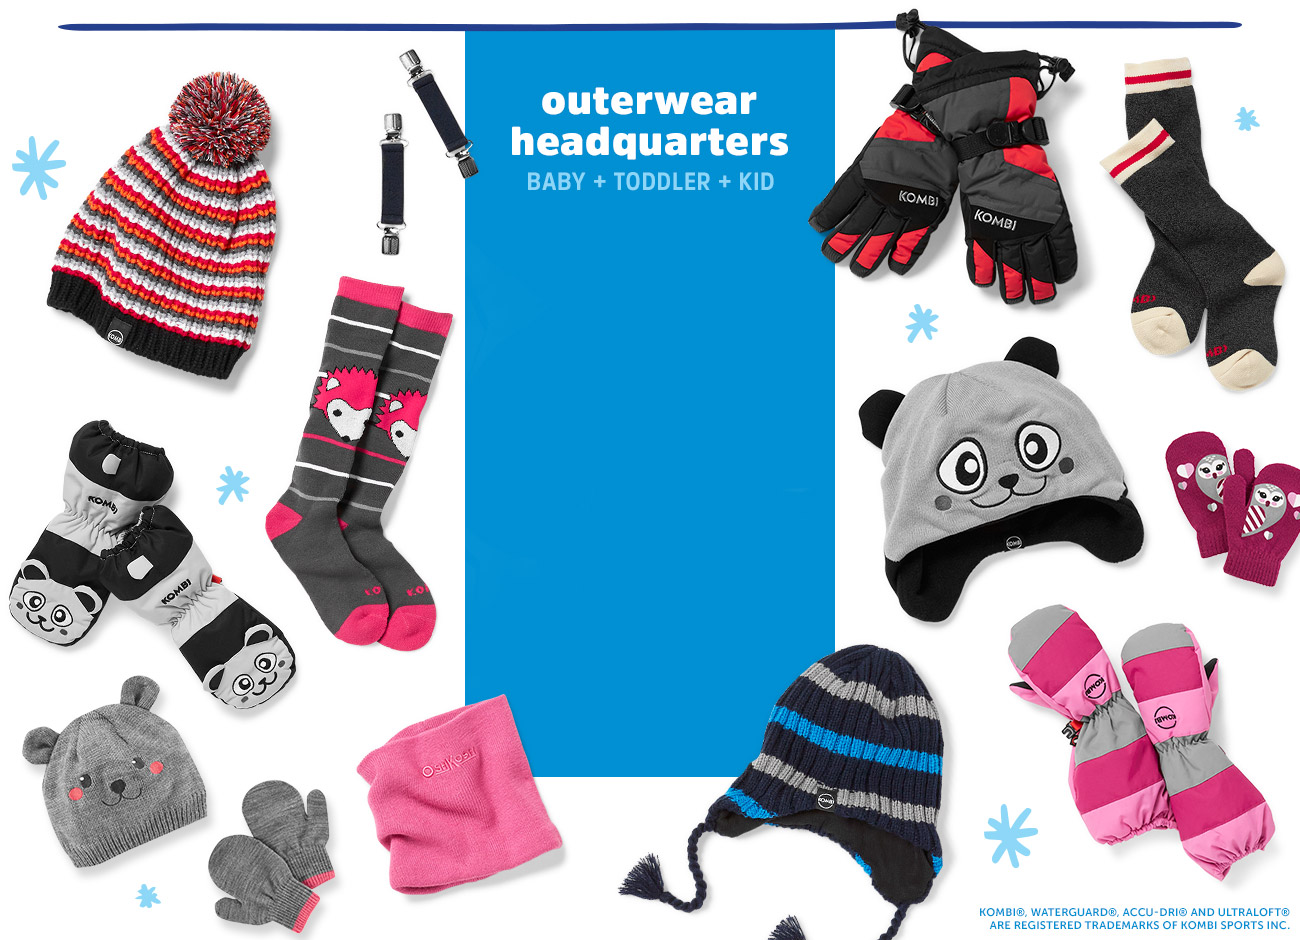 outerwear headquarters | BABY + TODDLER + KID | KOMBI®, WATERGUARD&reg, ACCU-DRI® AND ULTRALOFT® ARE REGISTERED TRADEMARKS OF KOMBI SPORTS INC.